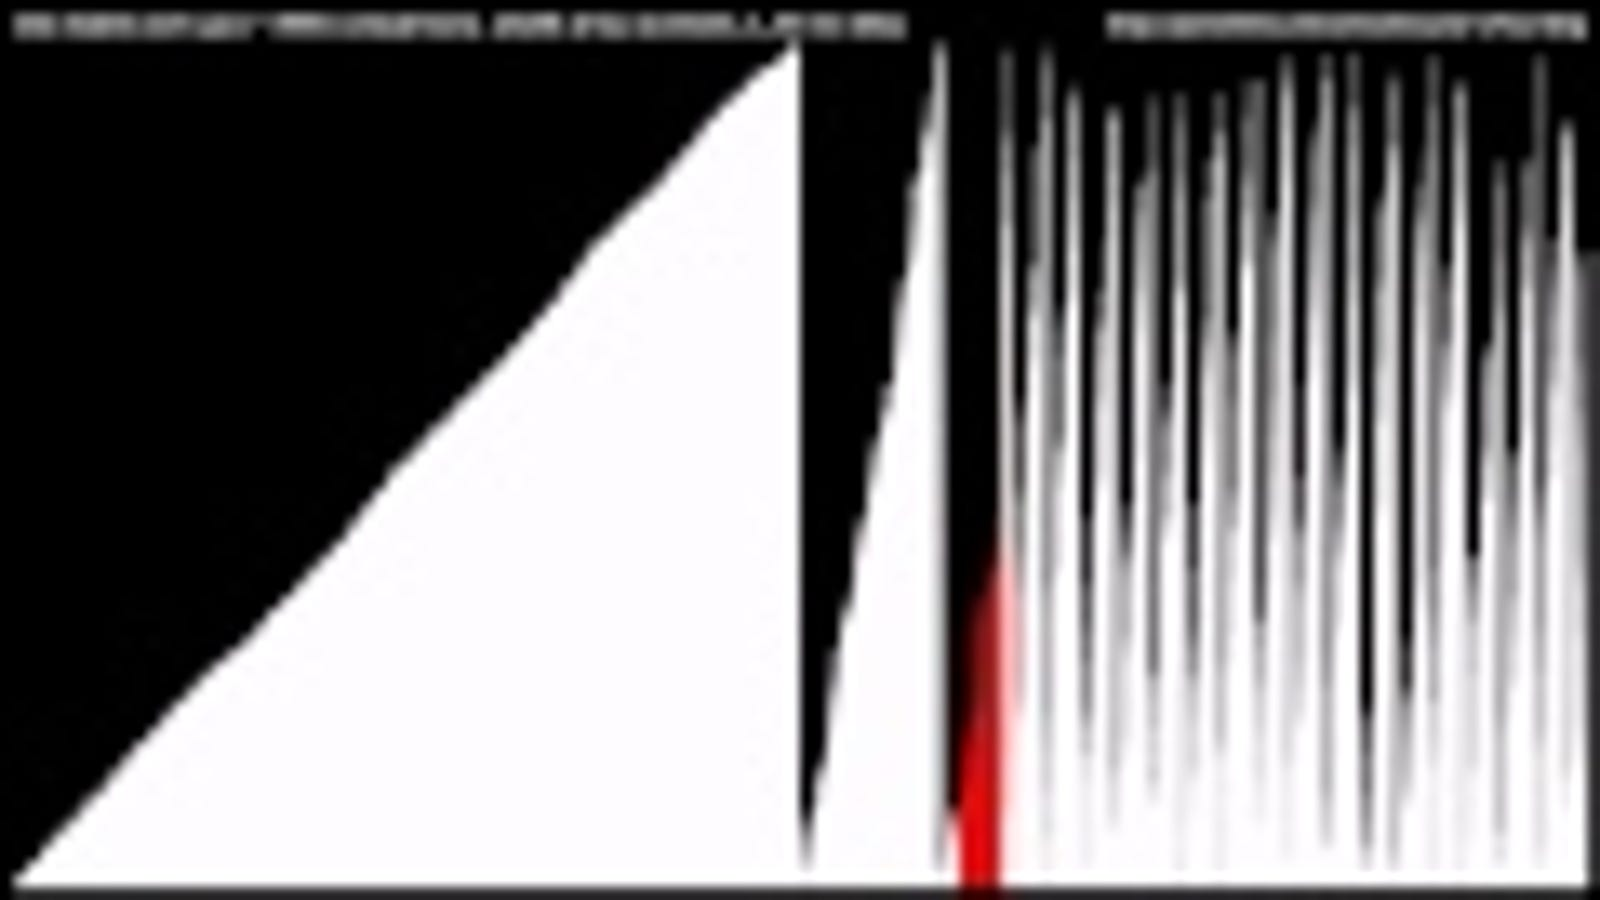 Sorting Algorithms Are Mesmerizing When Visualized